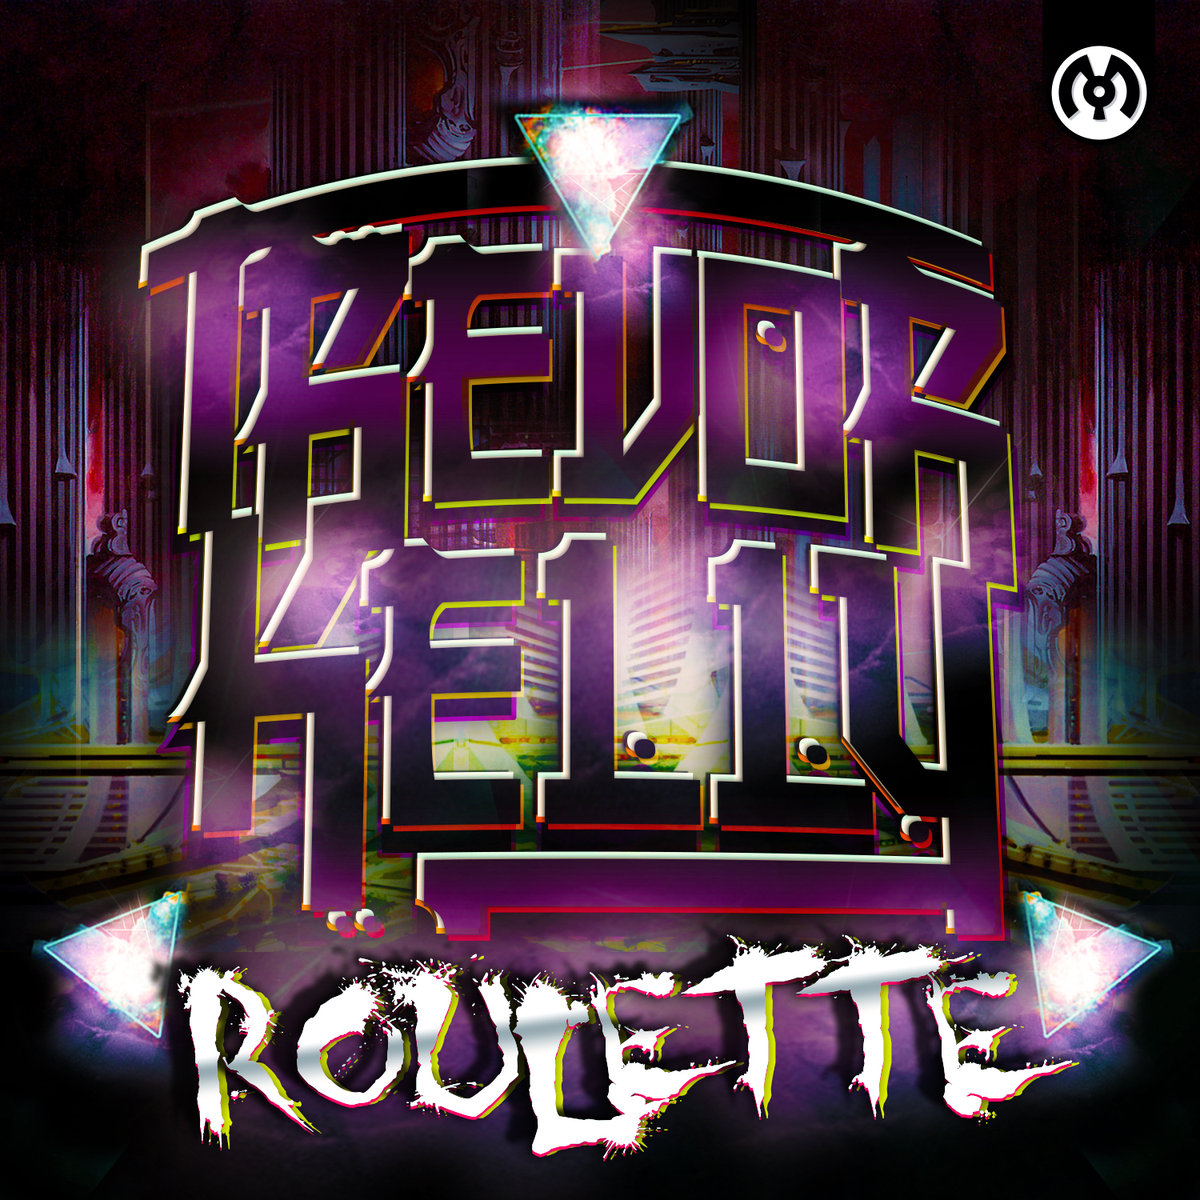 Trevor Kelly - Uh Blunt! @ 'Roulette' album (electronic, dubstep)